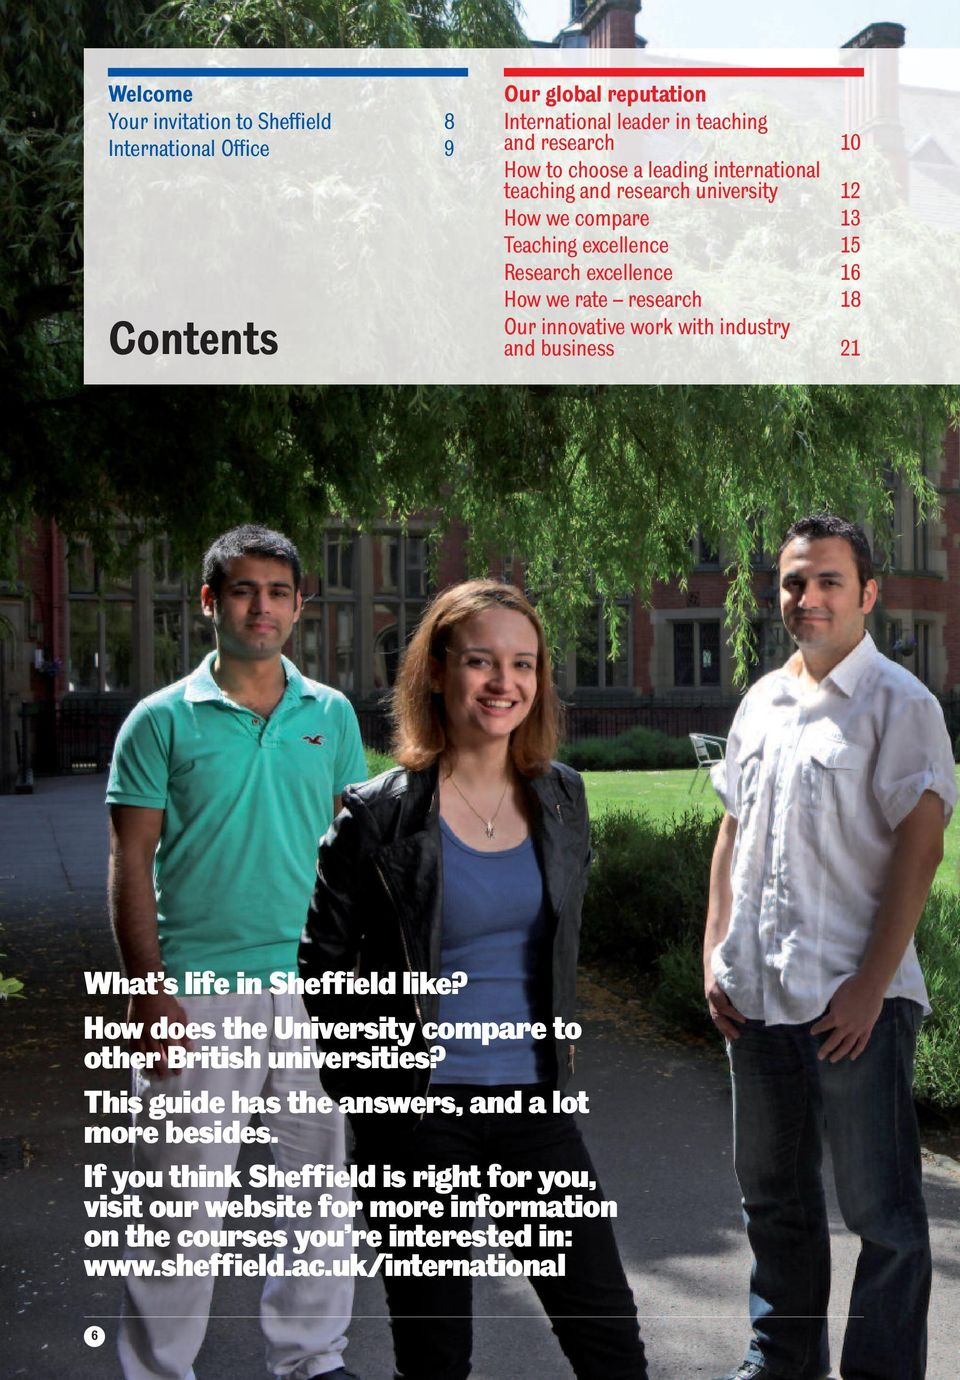 Our innovative work with industry and business 21 What s life in Sheffield like? How does the University compare to other British universities?